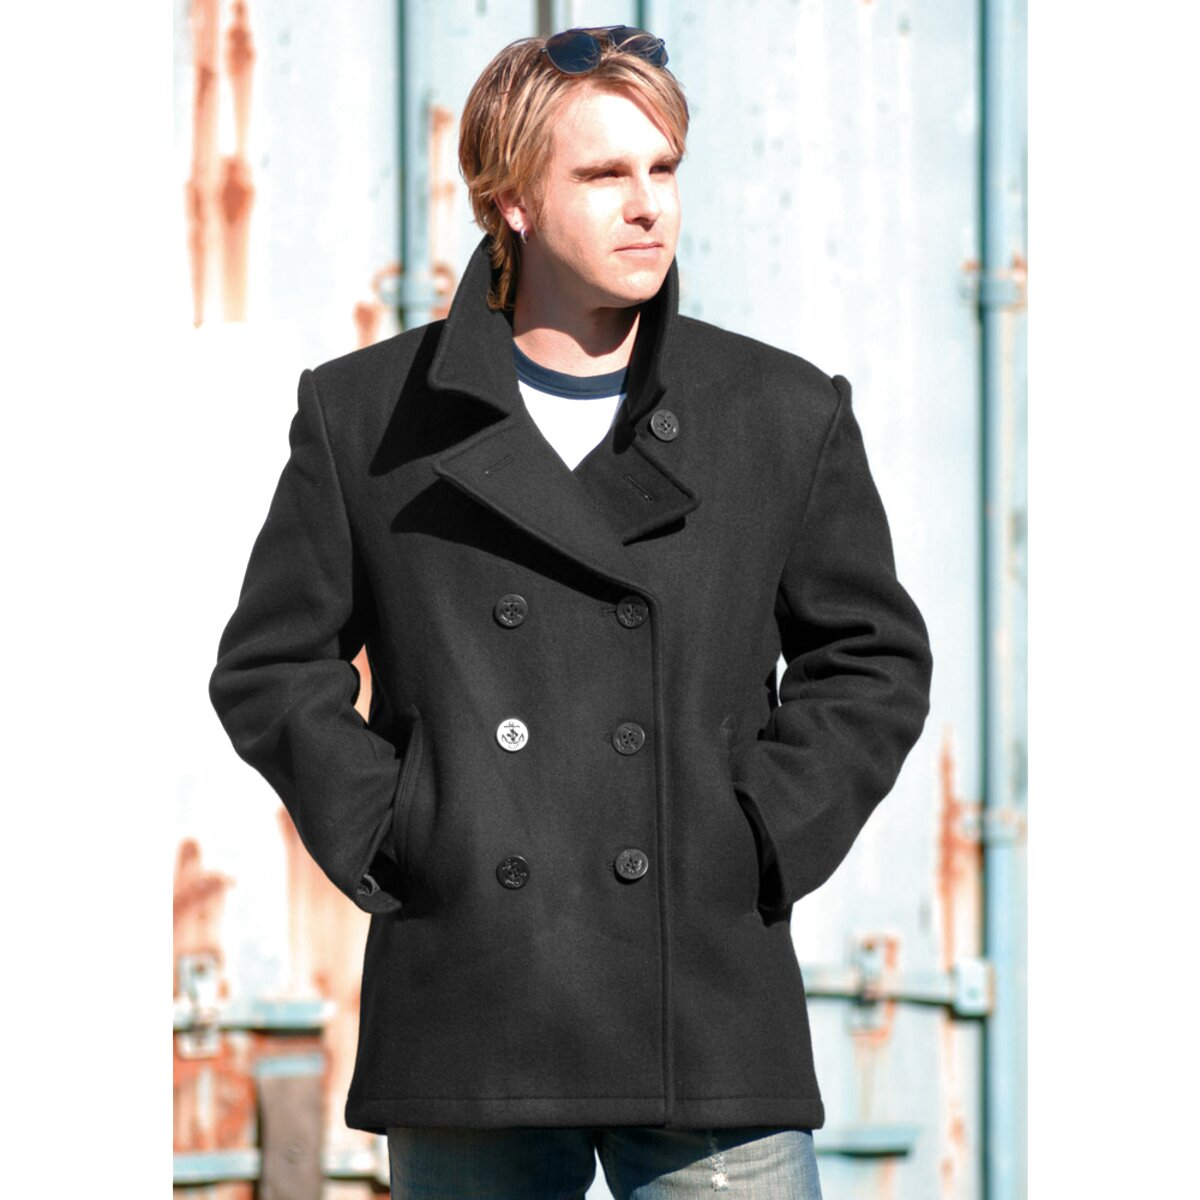 mens pea jacket for sale